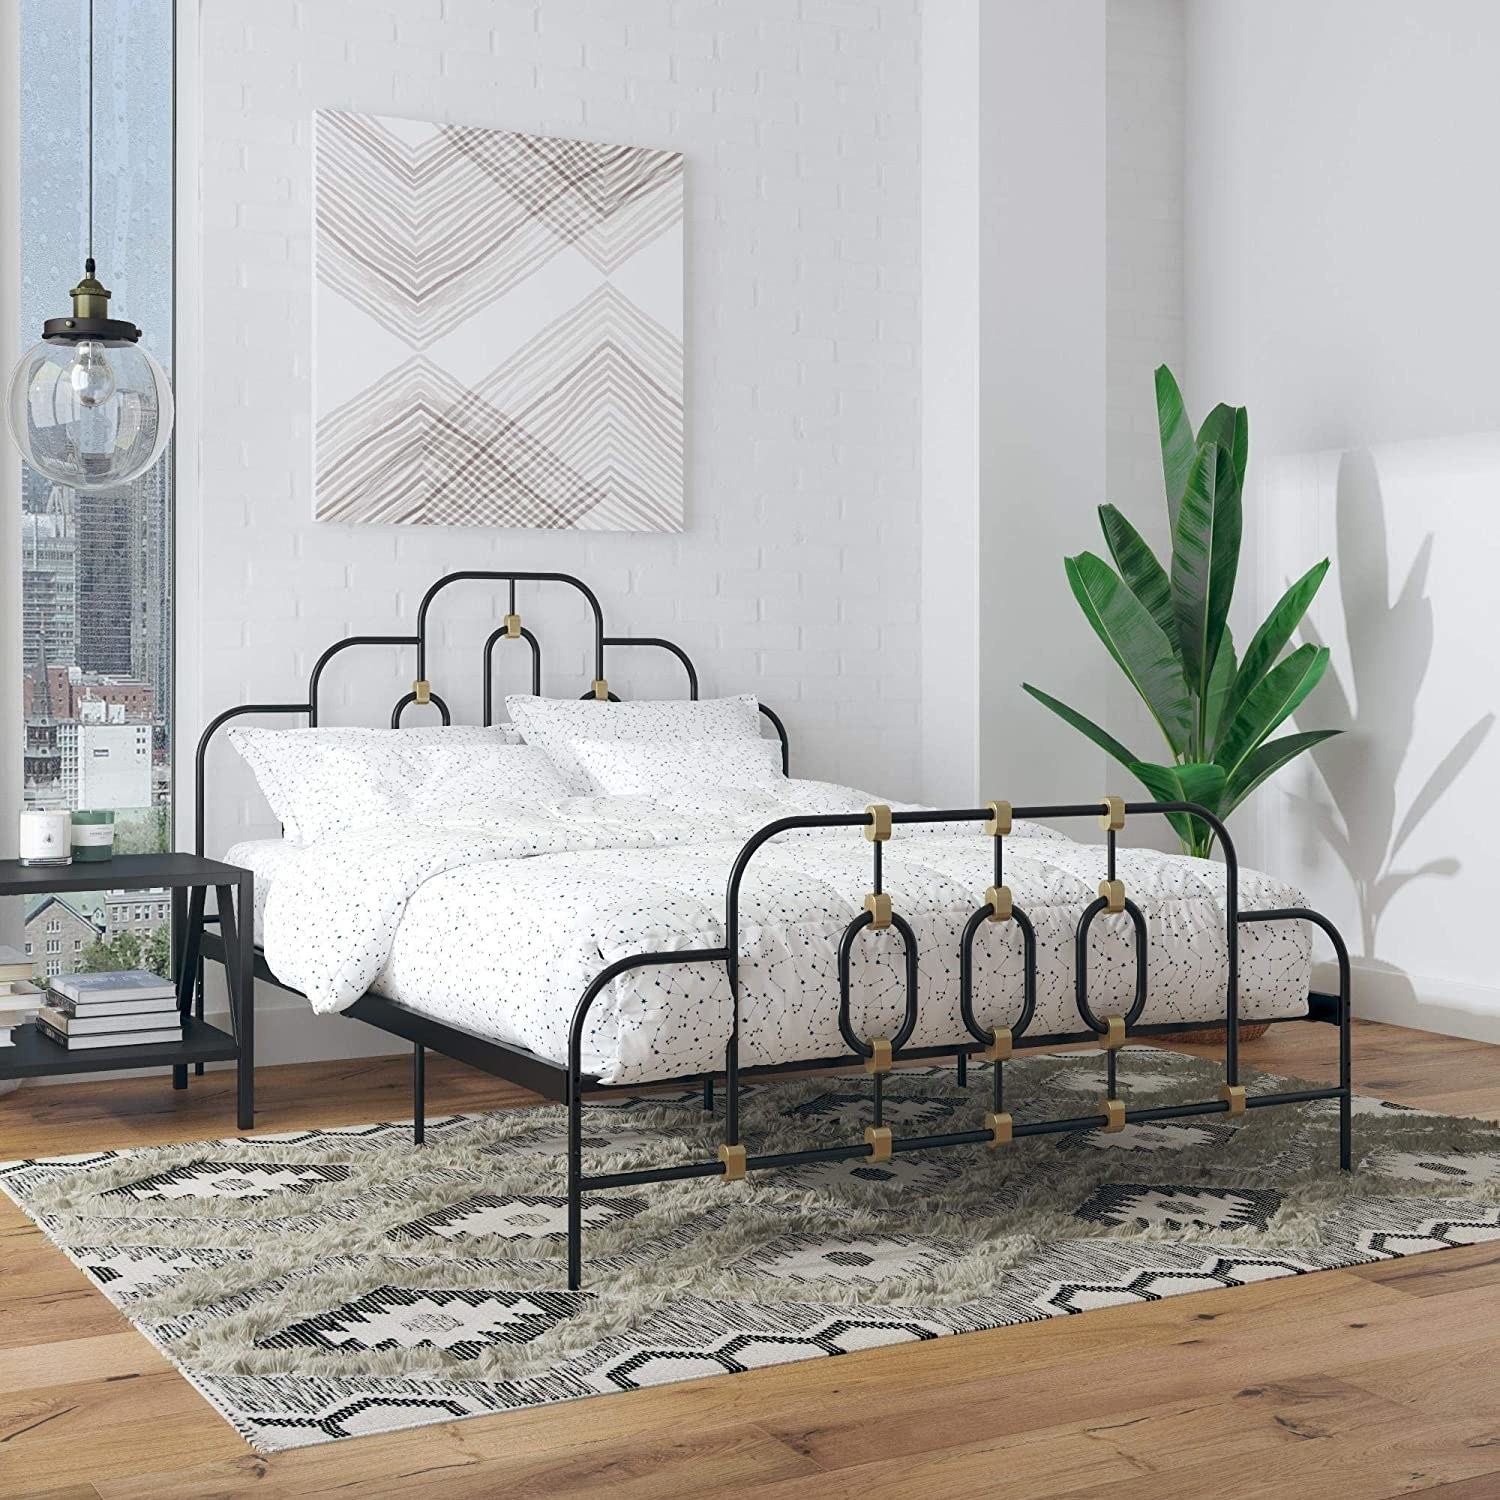 bed with intricate wire bed frame